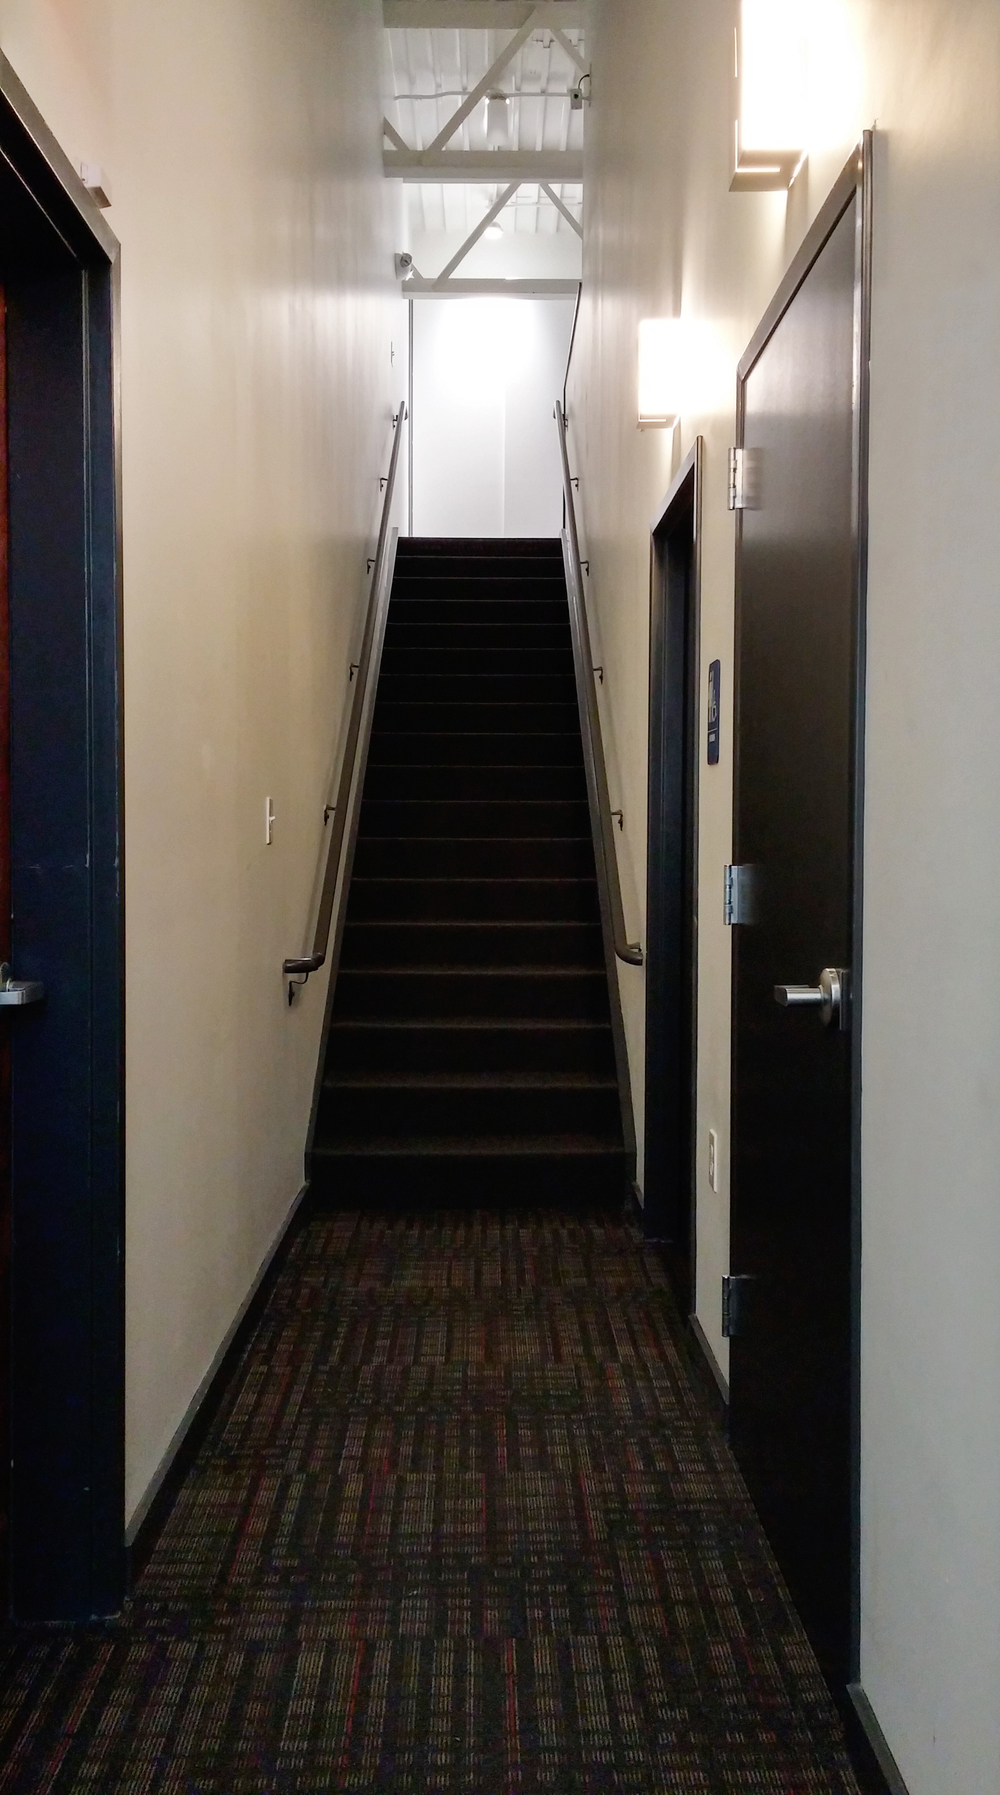 Utility corridor and access stair to Mezzanine above